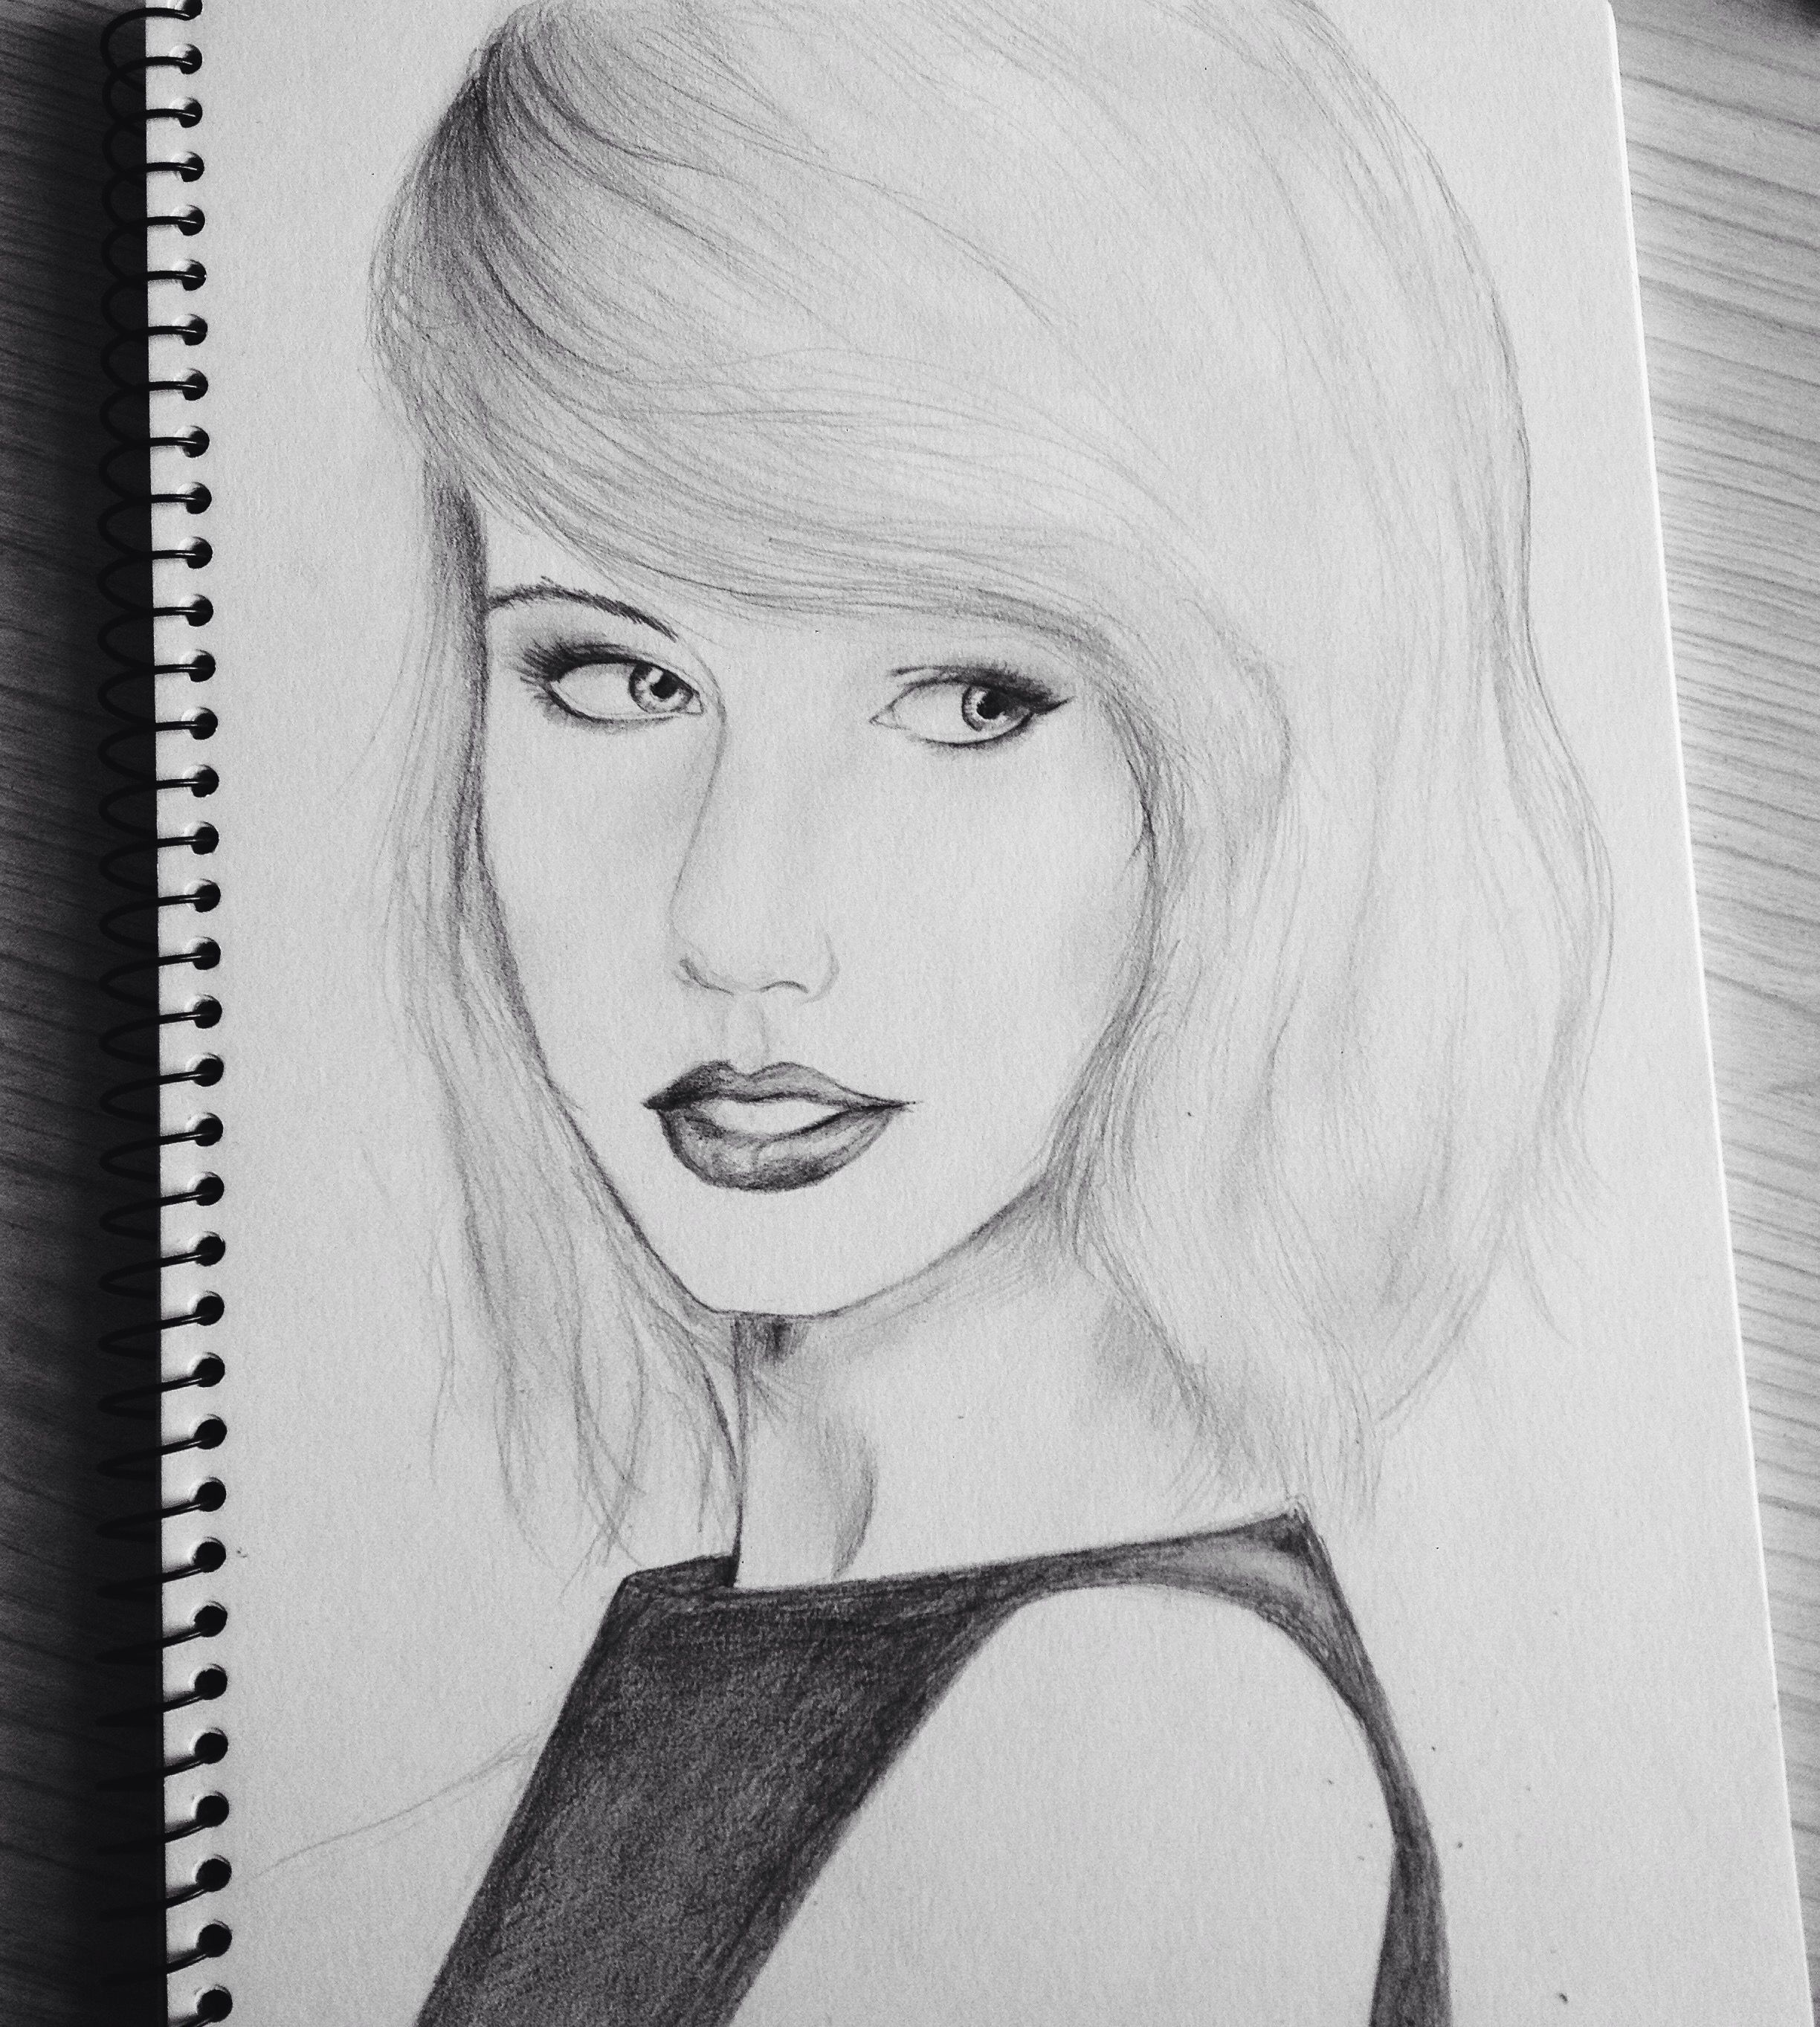 Taylorswift drawing sketchbook fashion pencildrawing my